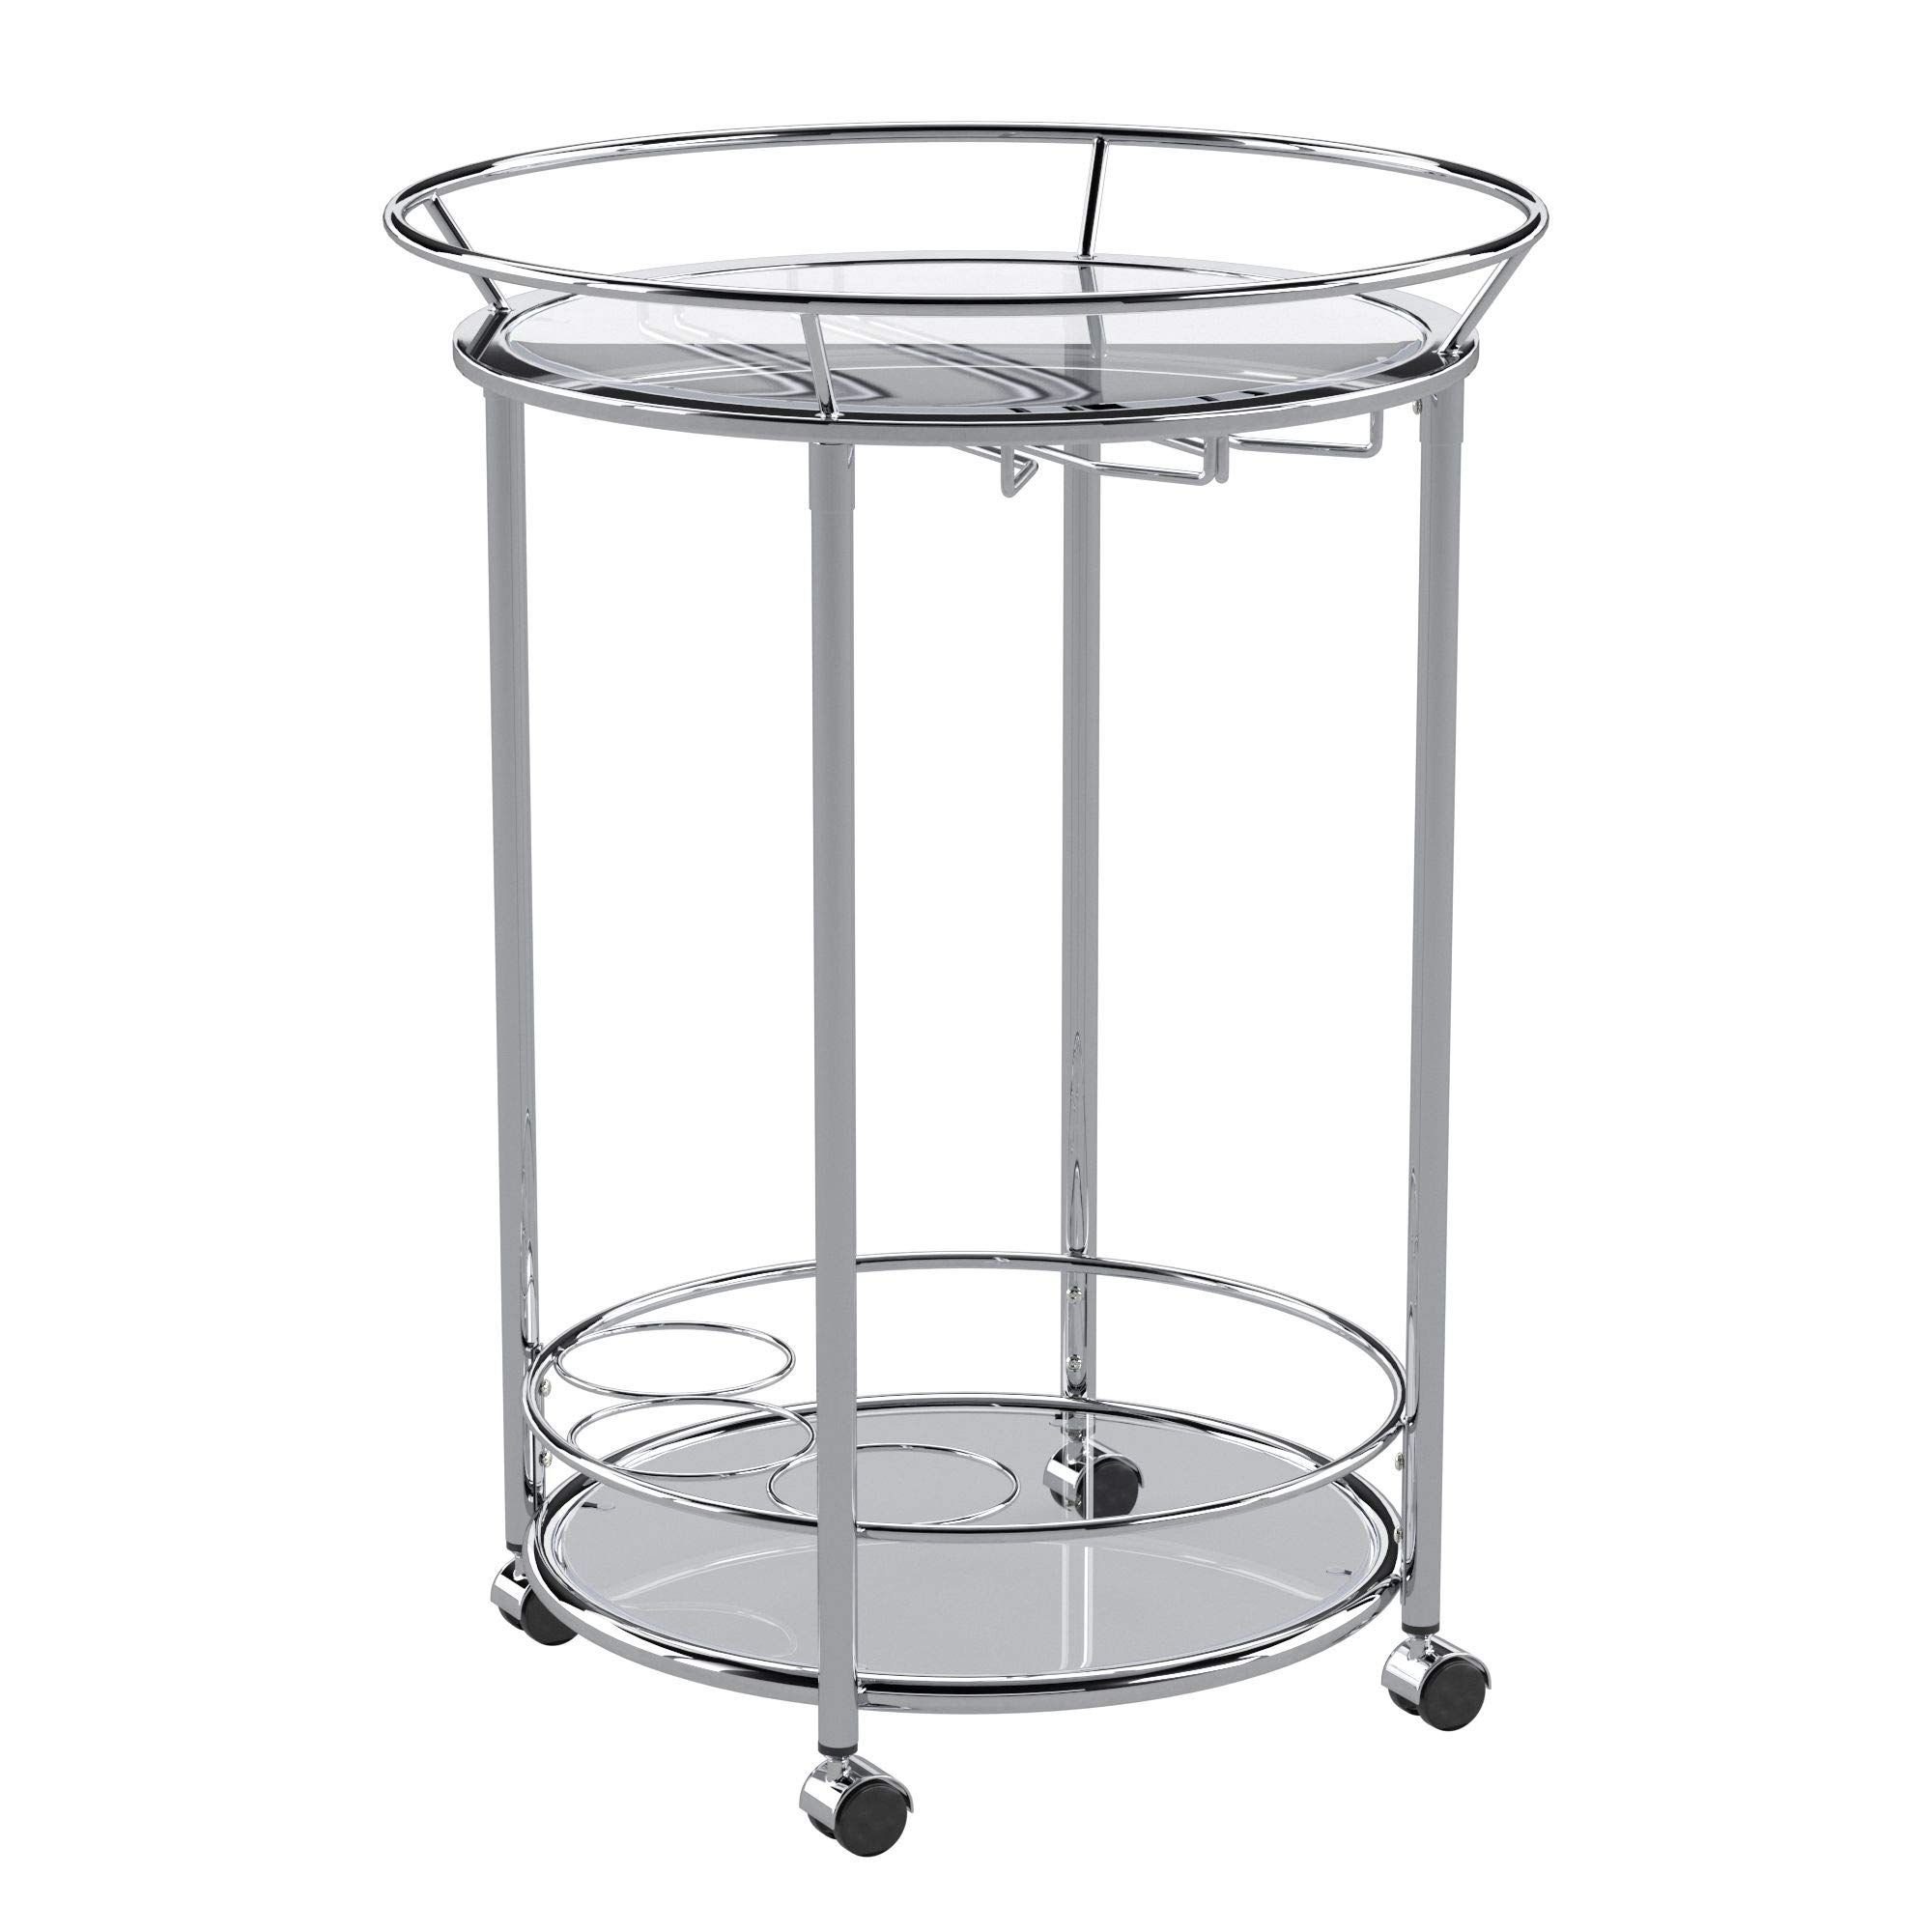 Union 5 Home Mortain Round Chrome Metal Mobile Bar Cart with Glass Top by Union 5 Home